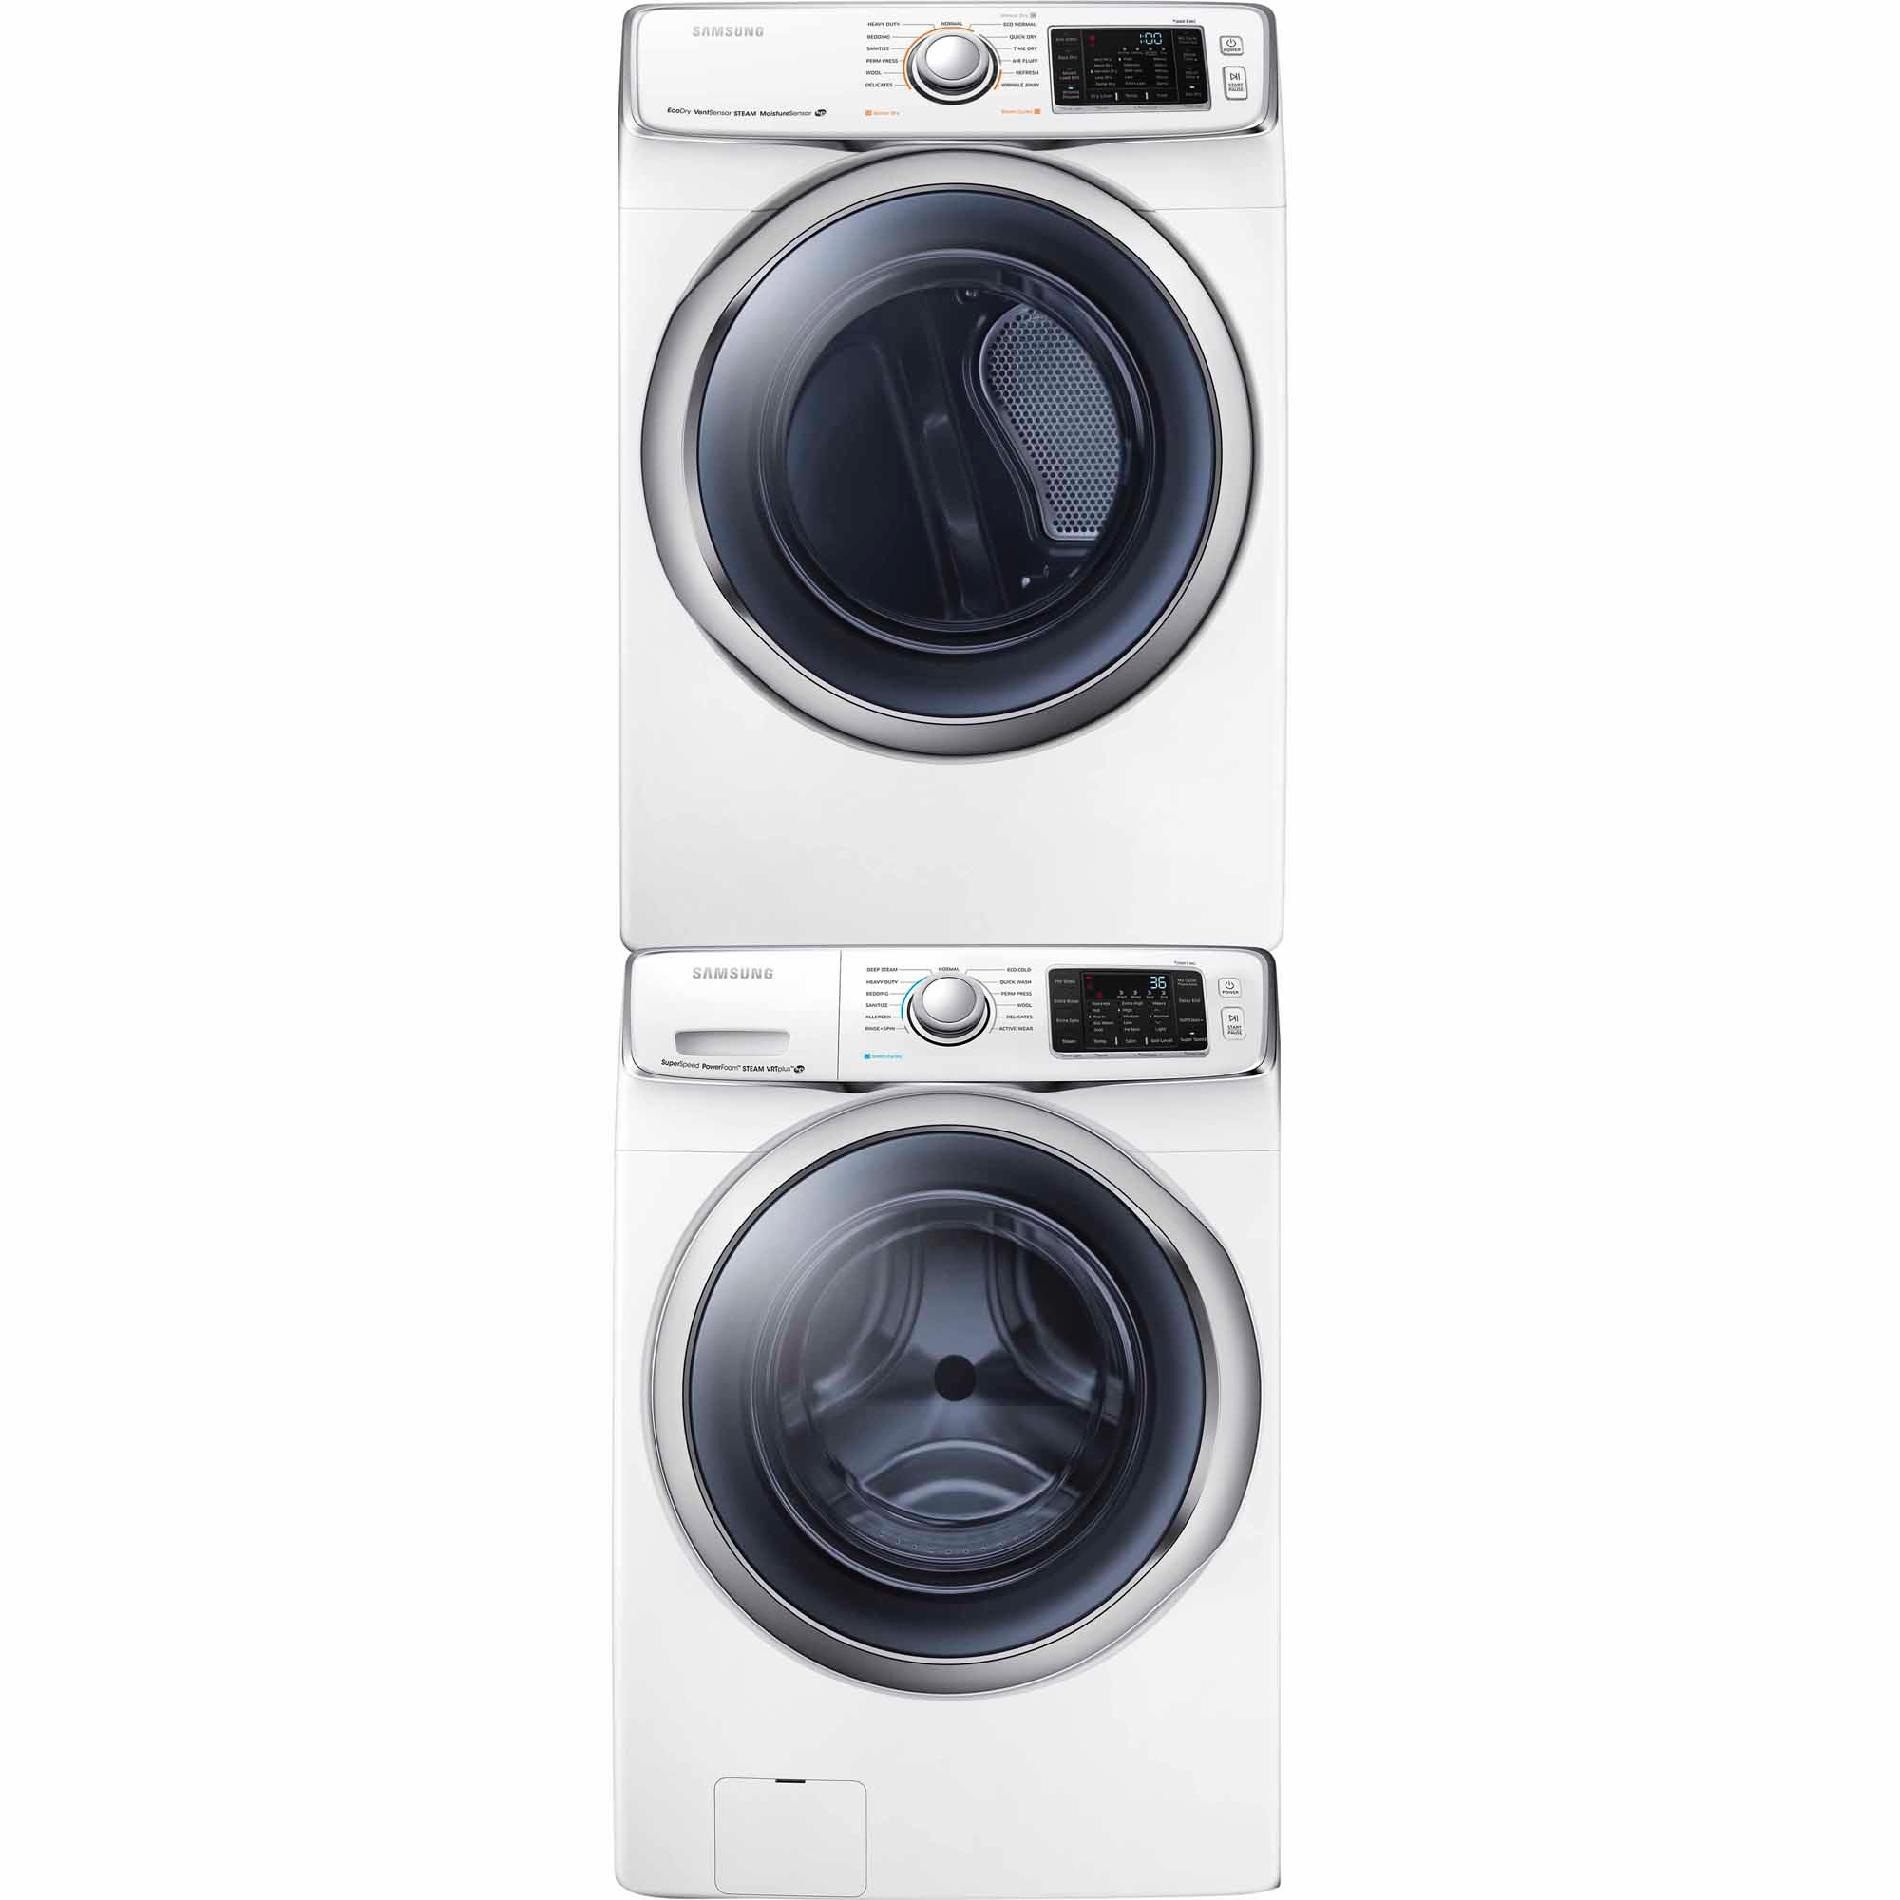 Samsung DV45H6300EW 7.5 cu. ft. Electric Dryer - White